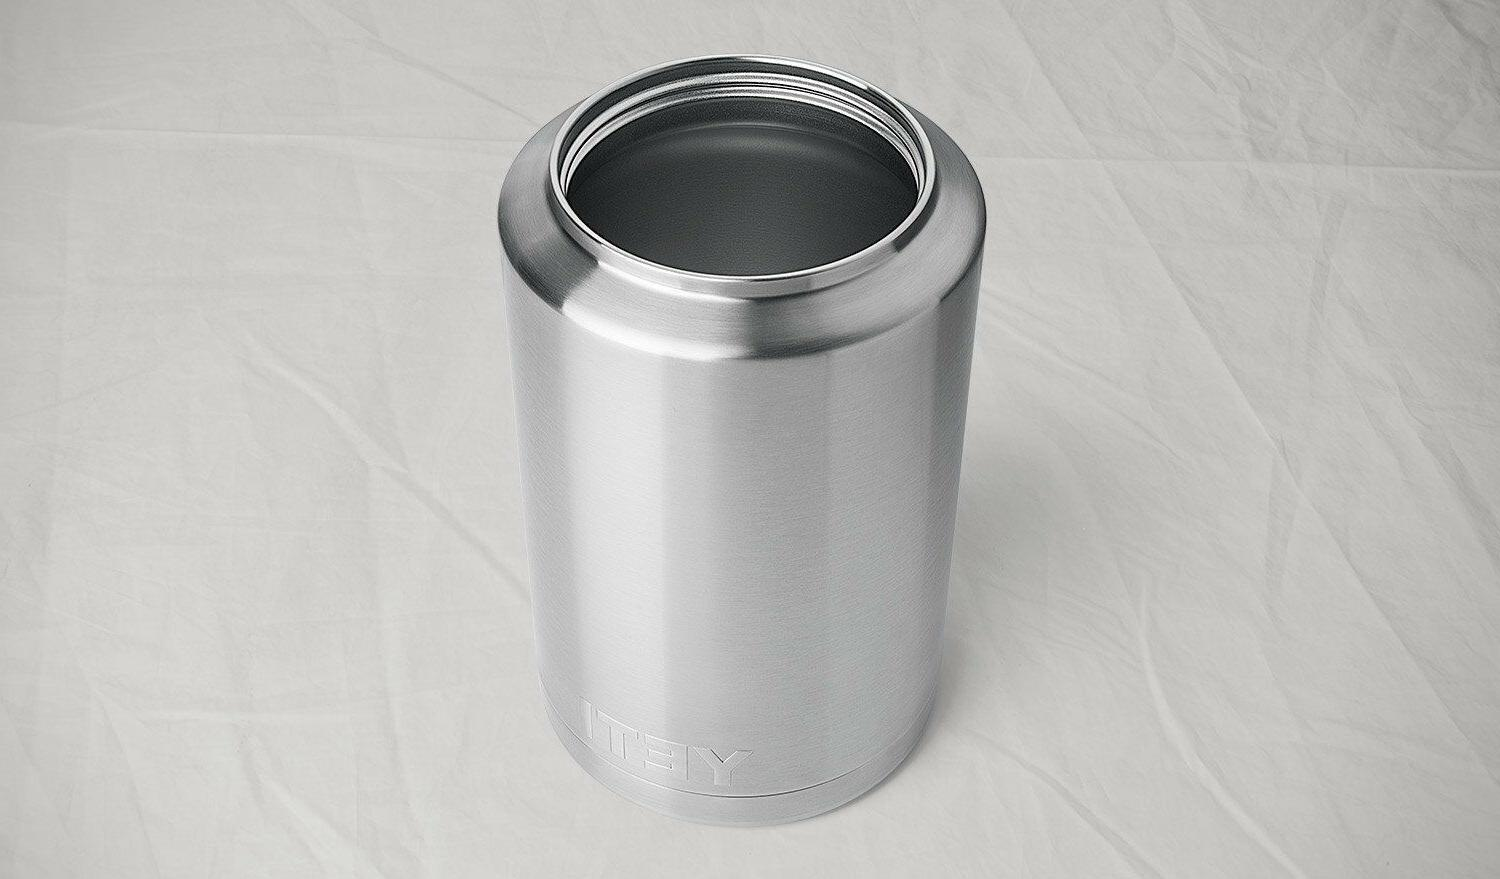 YETI Insulated Stainless Jug with MagCap